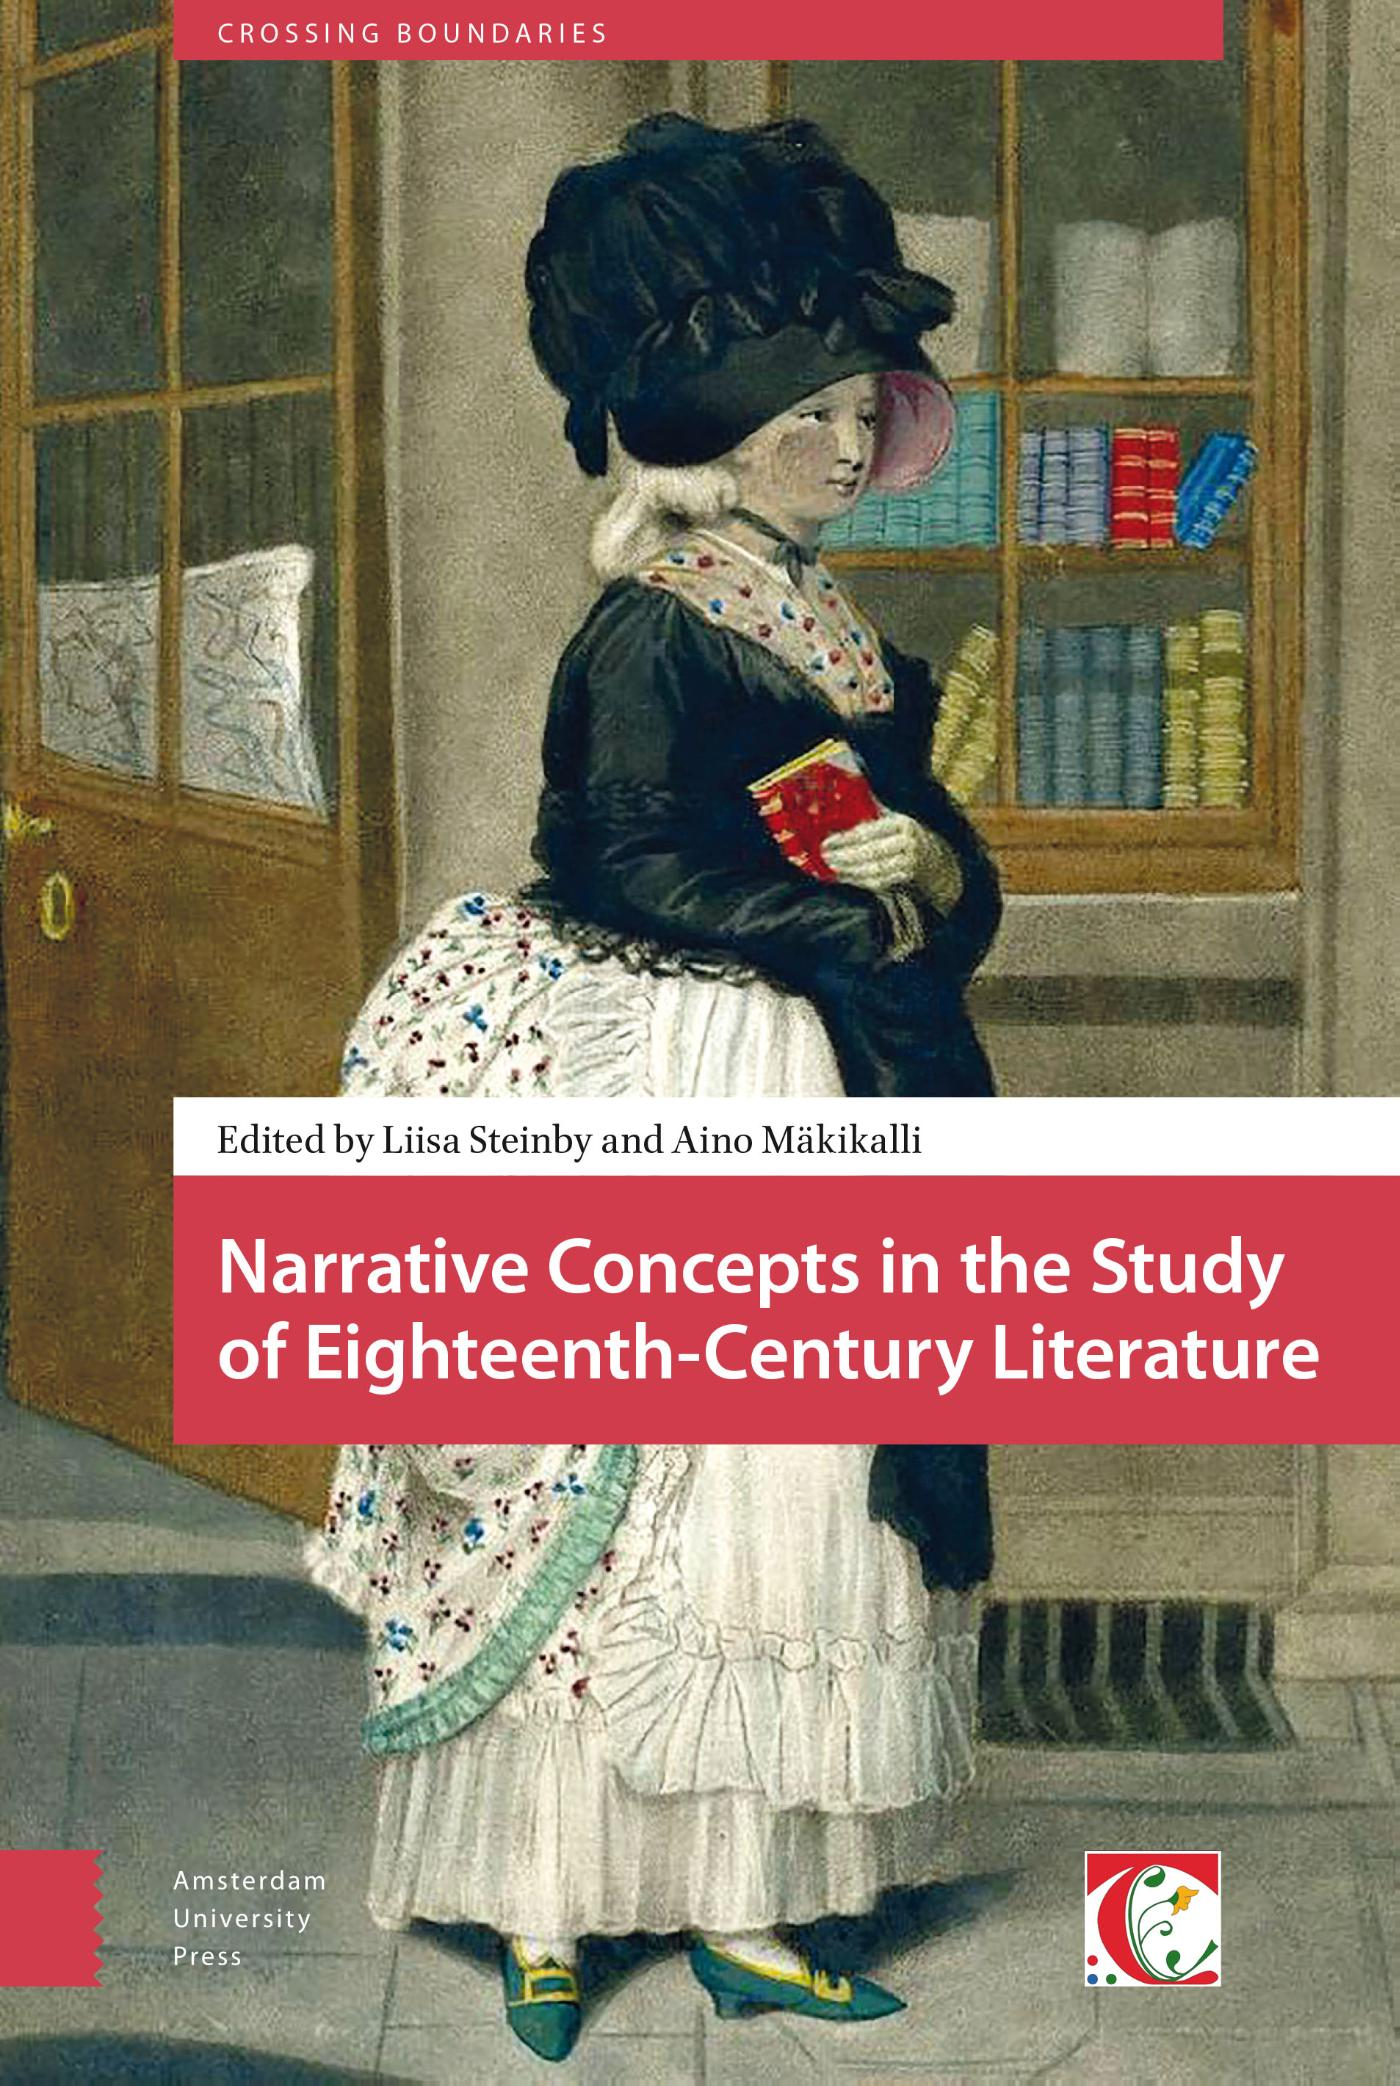 Narrative concepts in the study of Eighteenth-Century literature